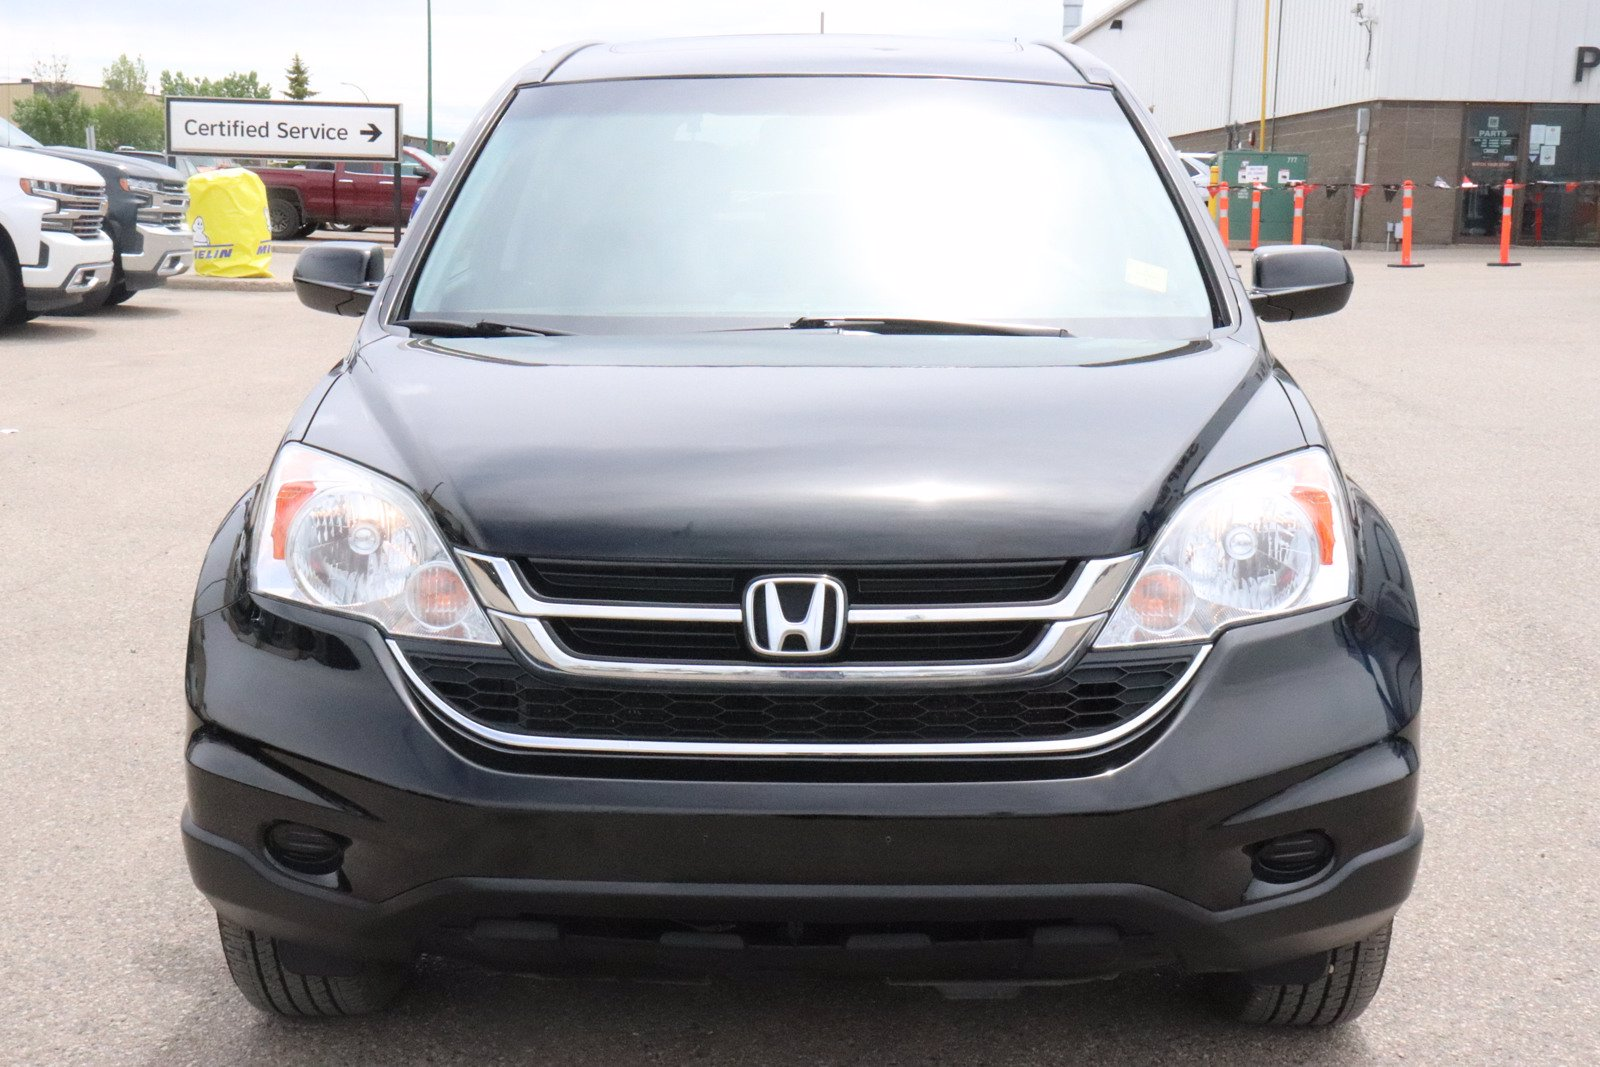 Pre-Owned 2011 Honda CR-V EX - Sunroof, Winter Tire Pkg